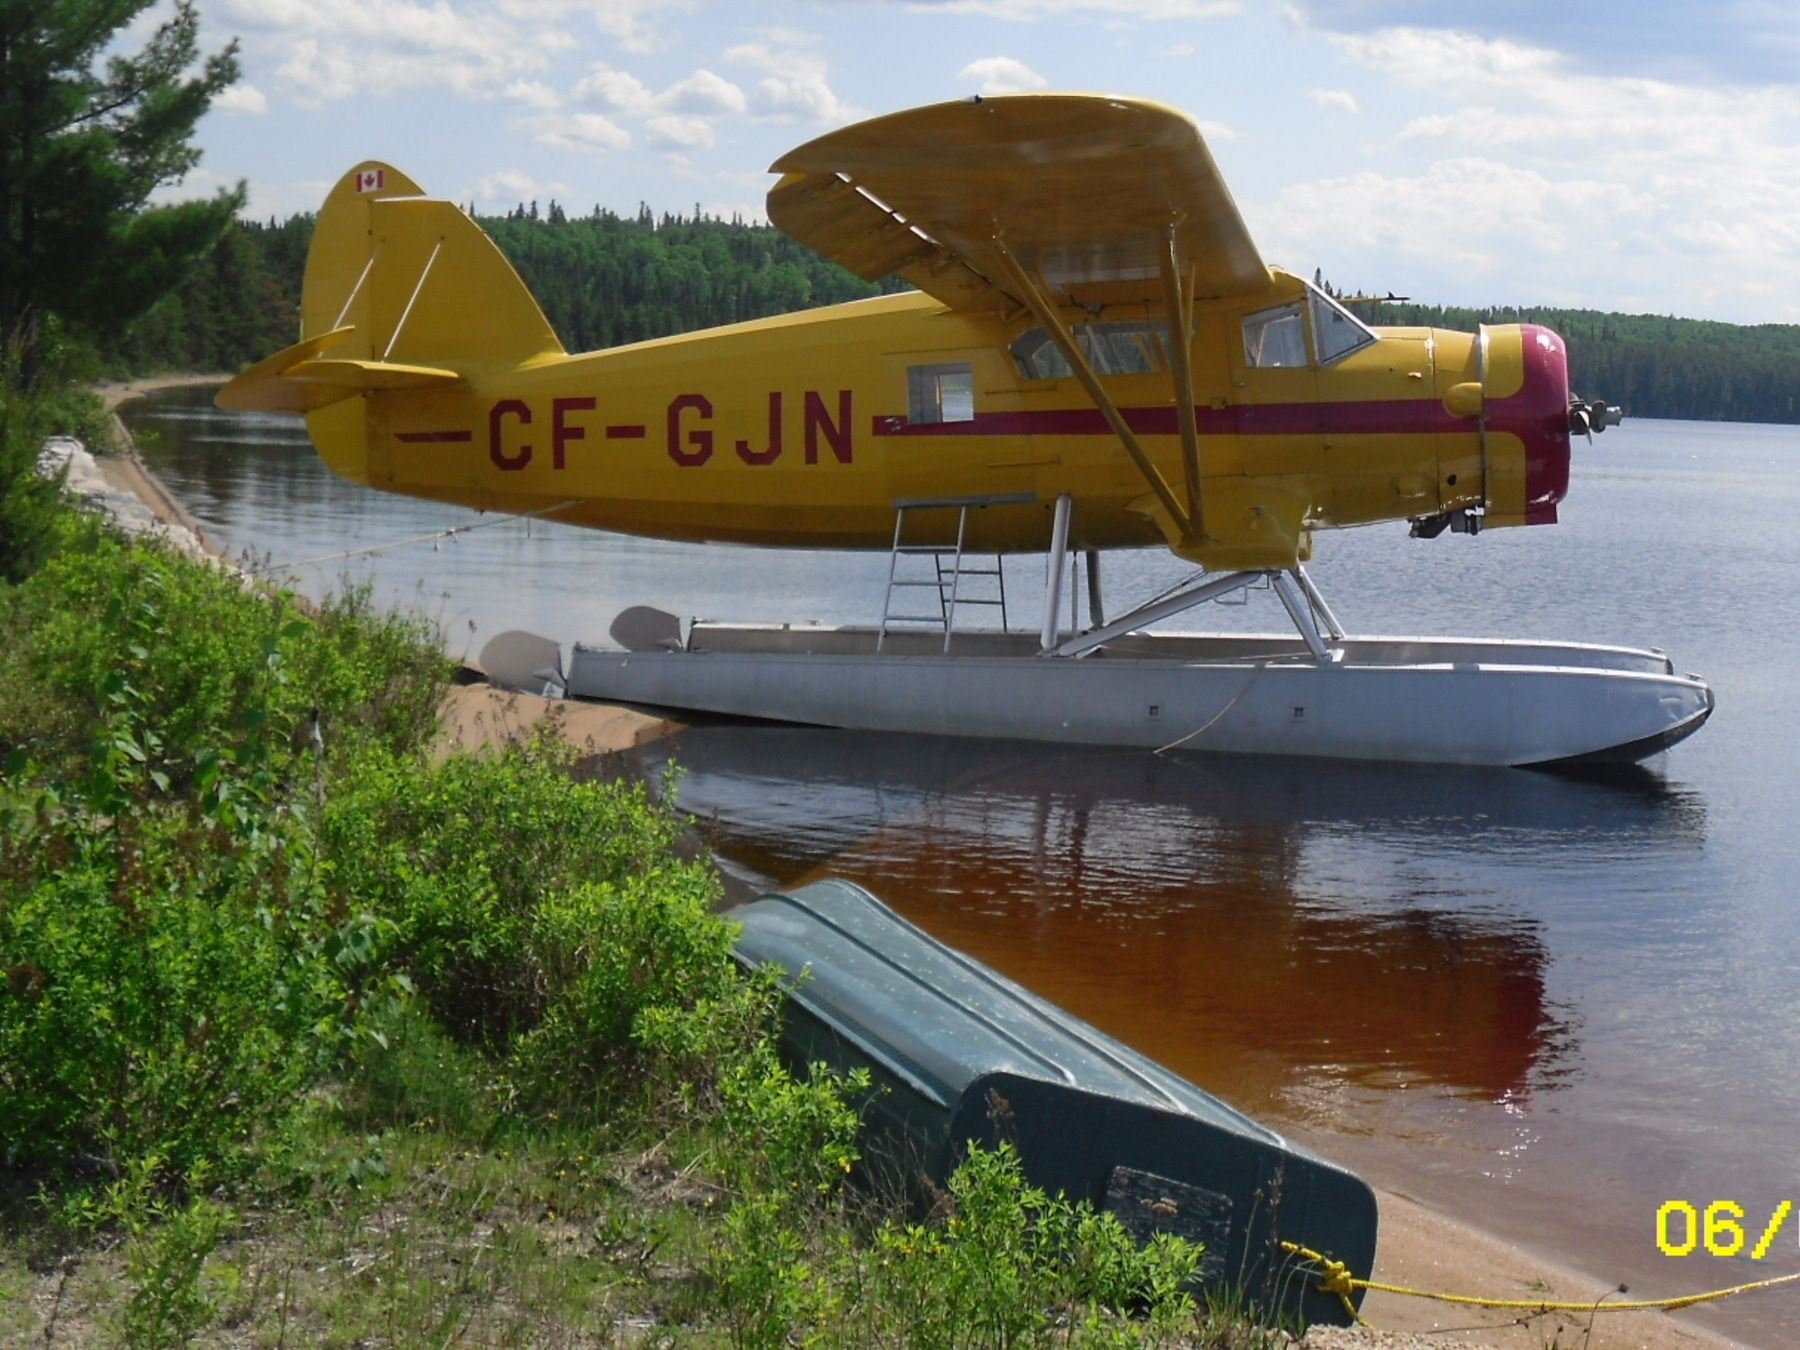 1947 Noorduyn Norseman Mark VI for sale in ON Canada